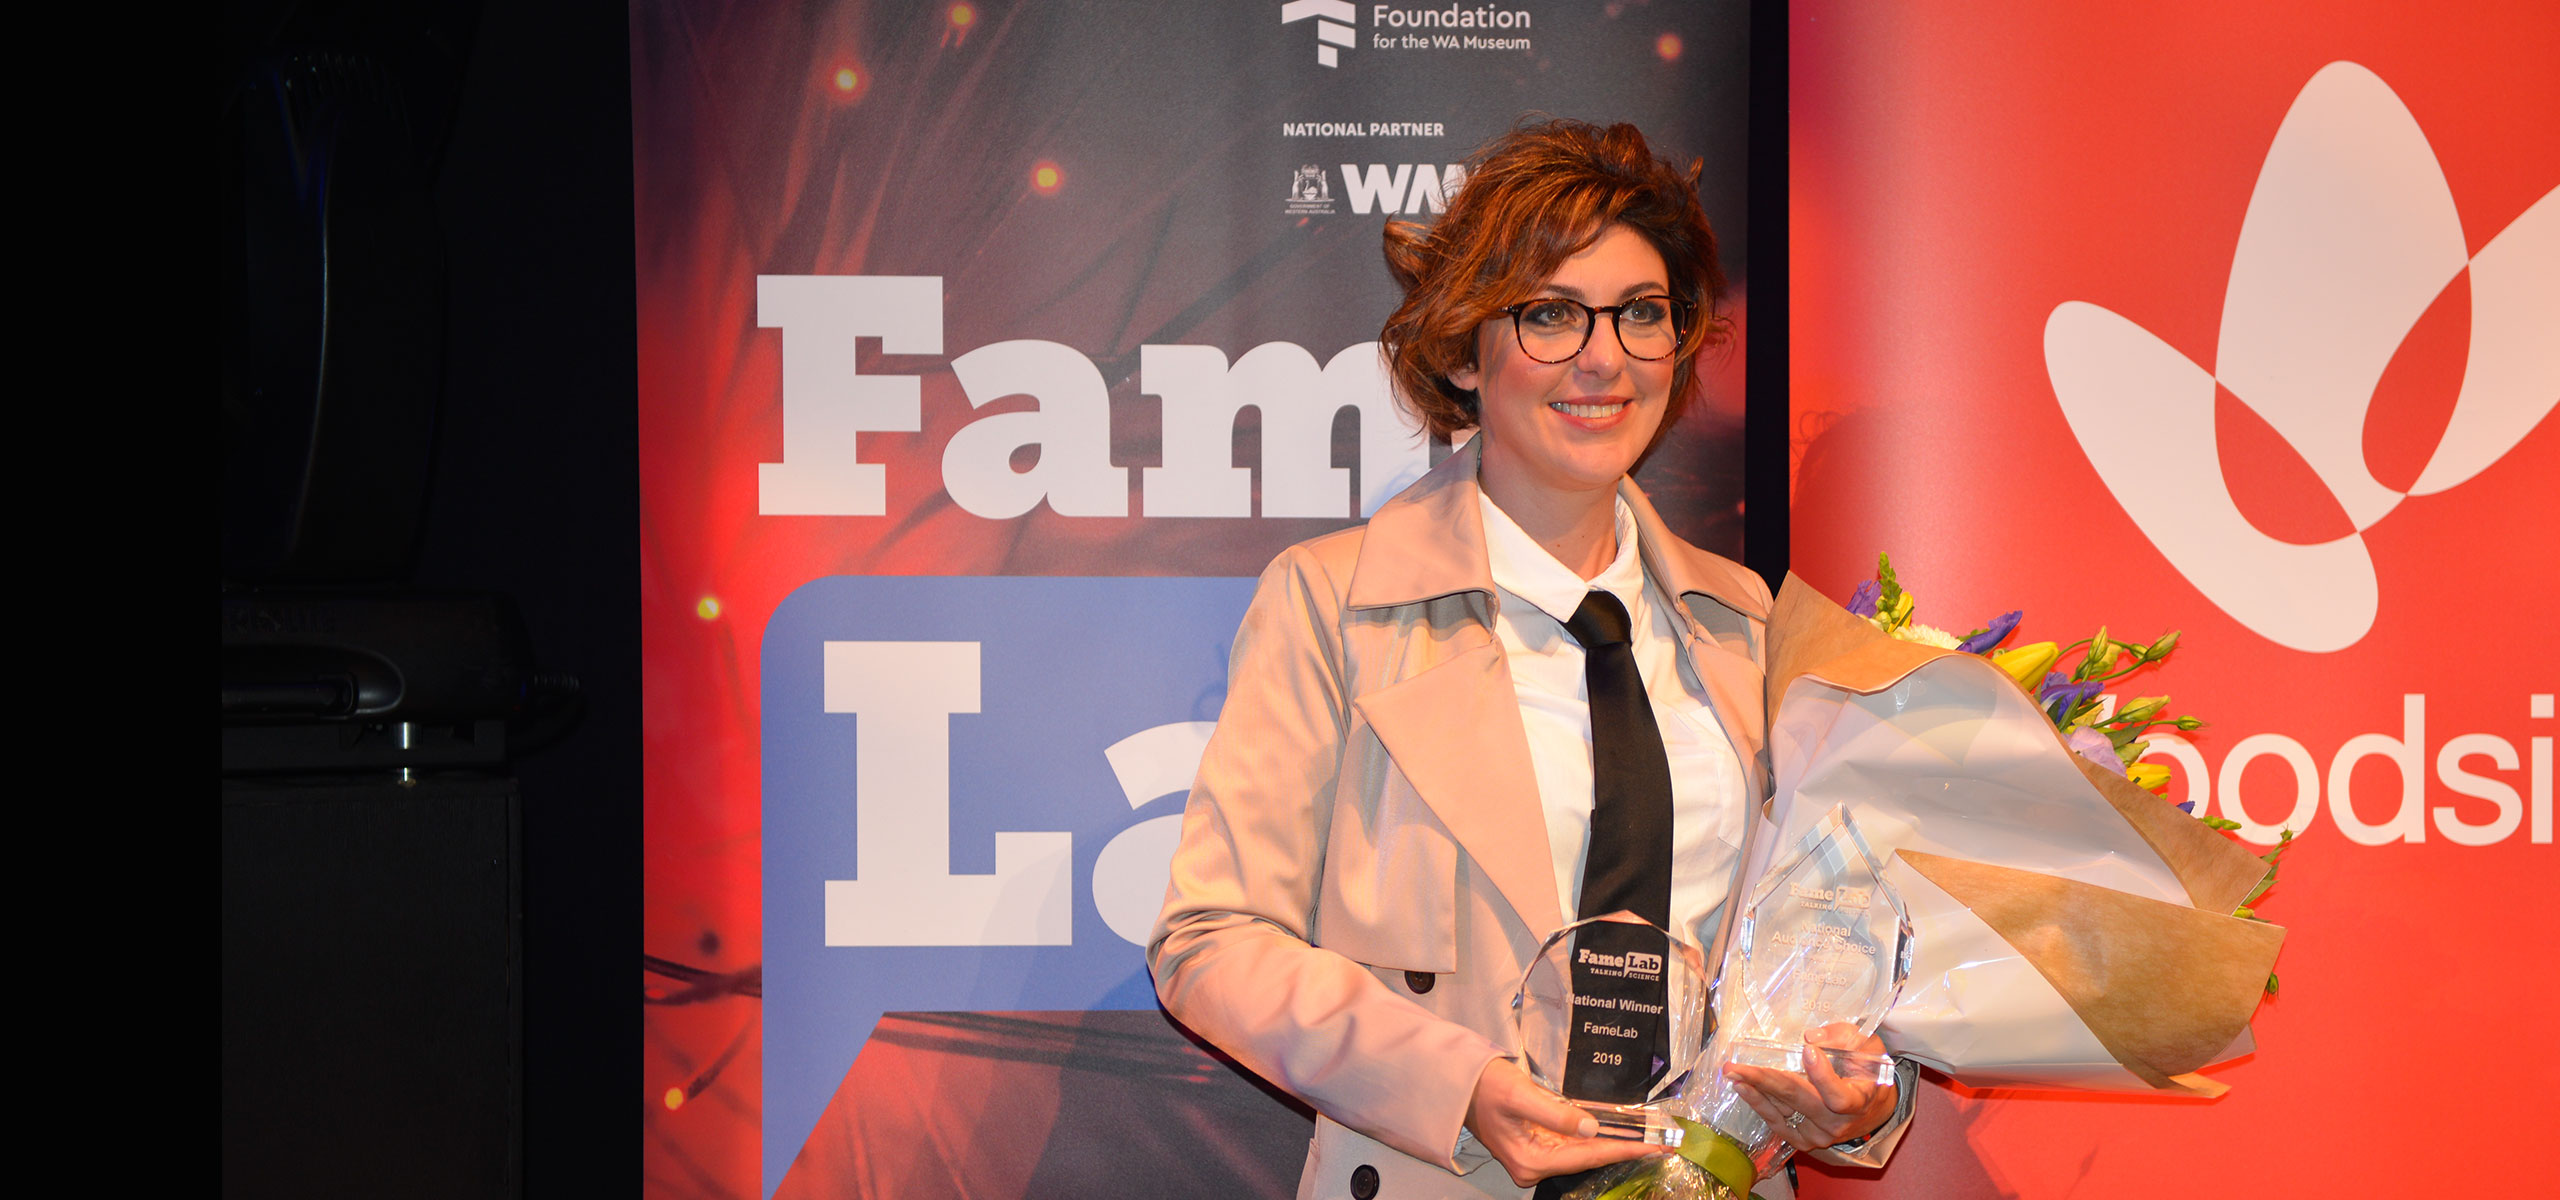 Dr Paola Magni receives FameLab award